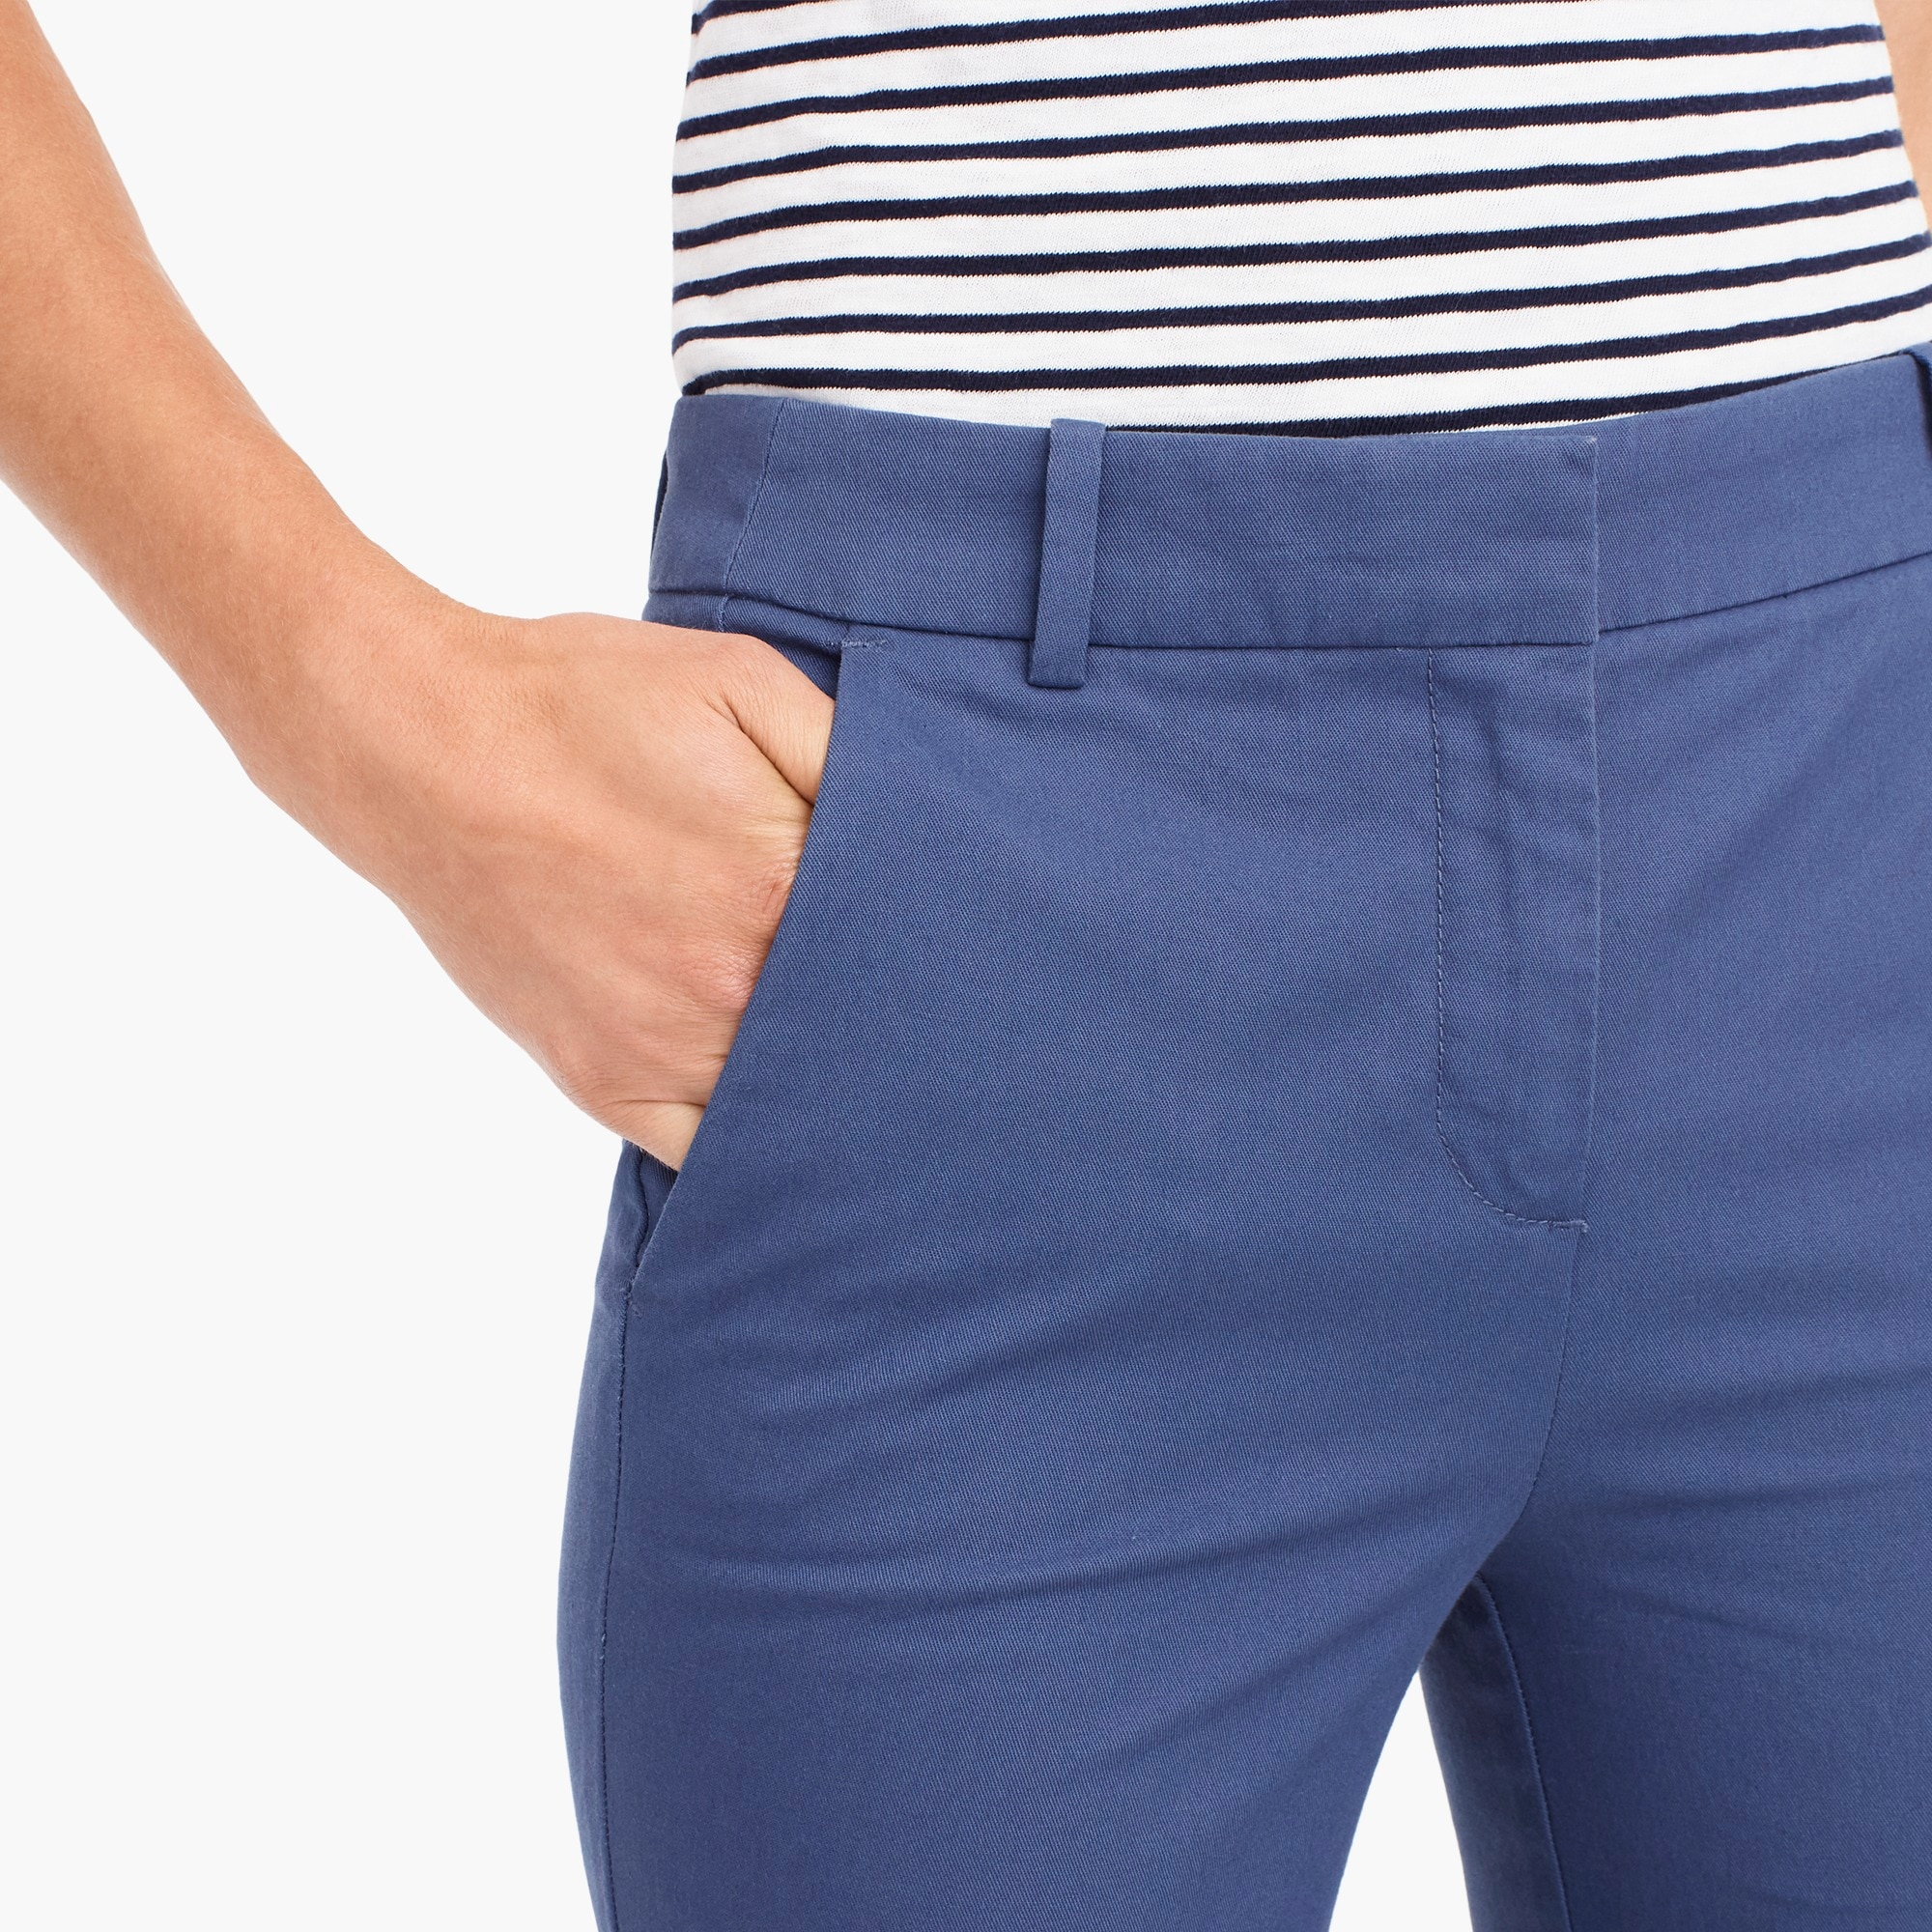 Image 3 for Petite effortless slim crop chino pant